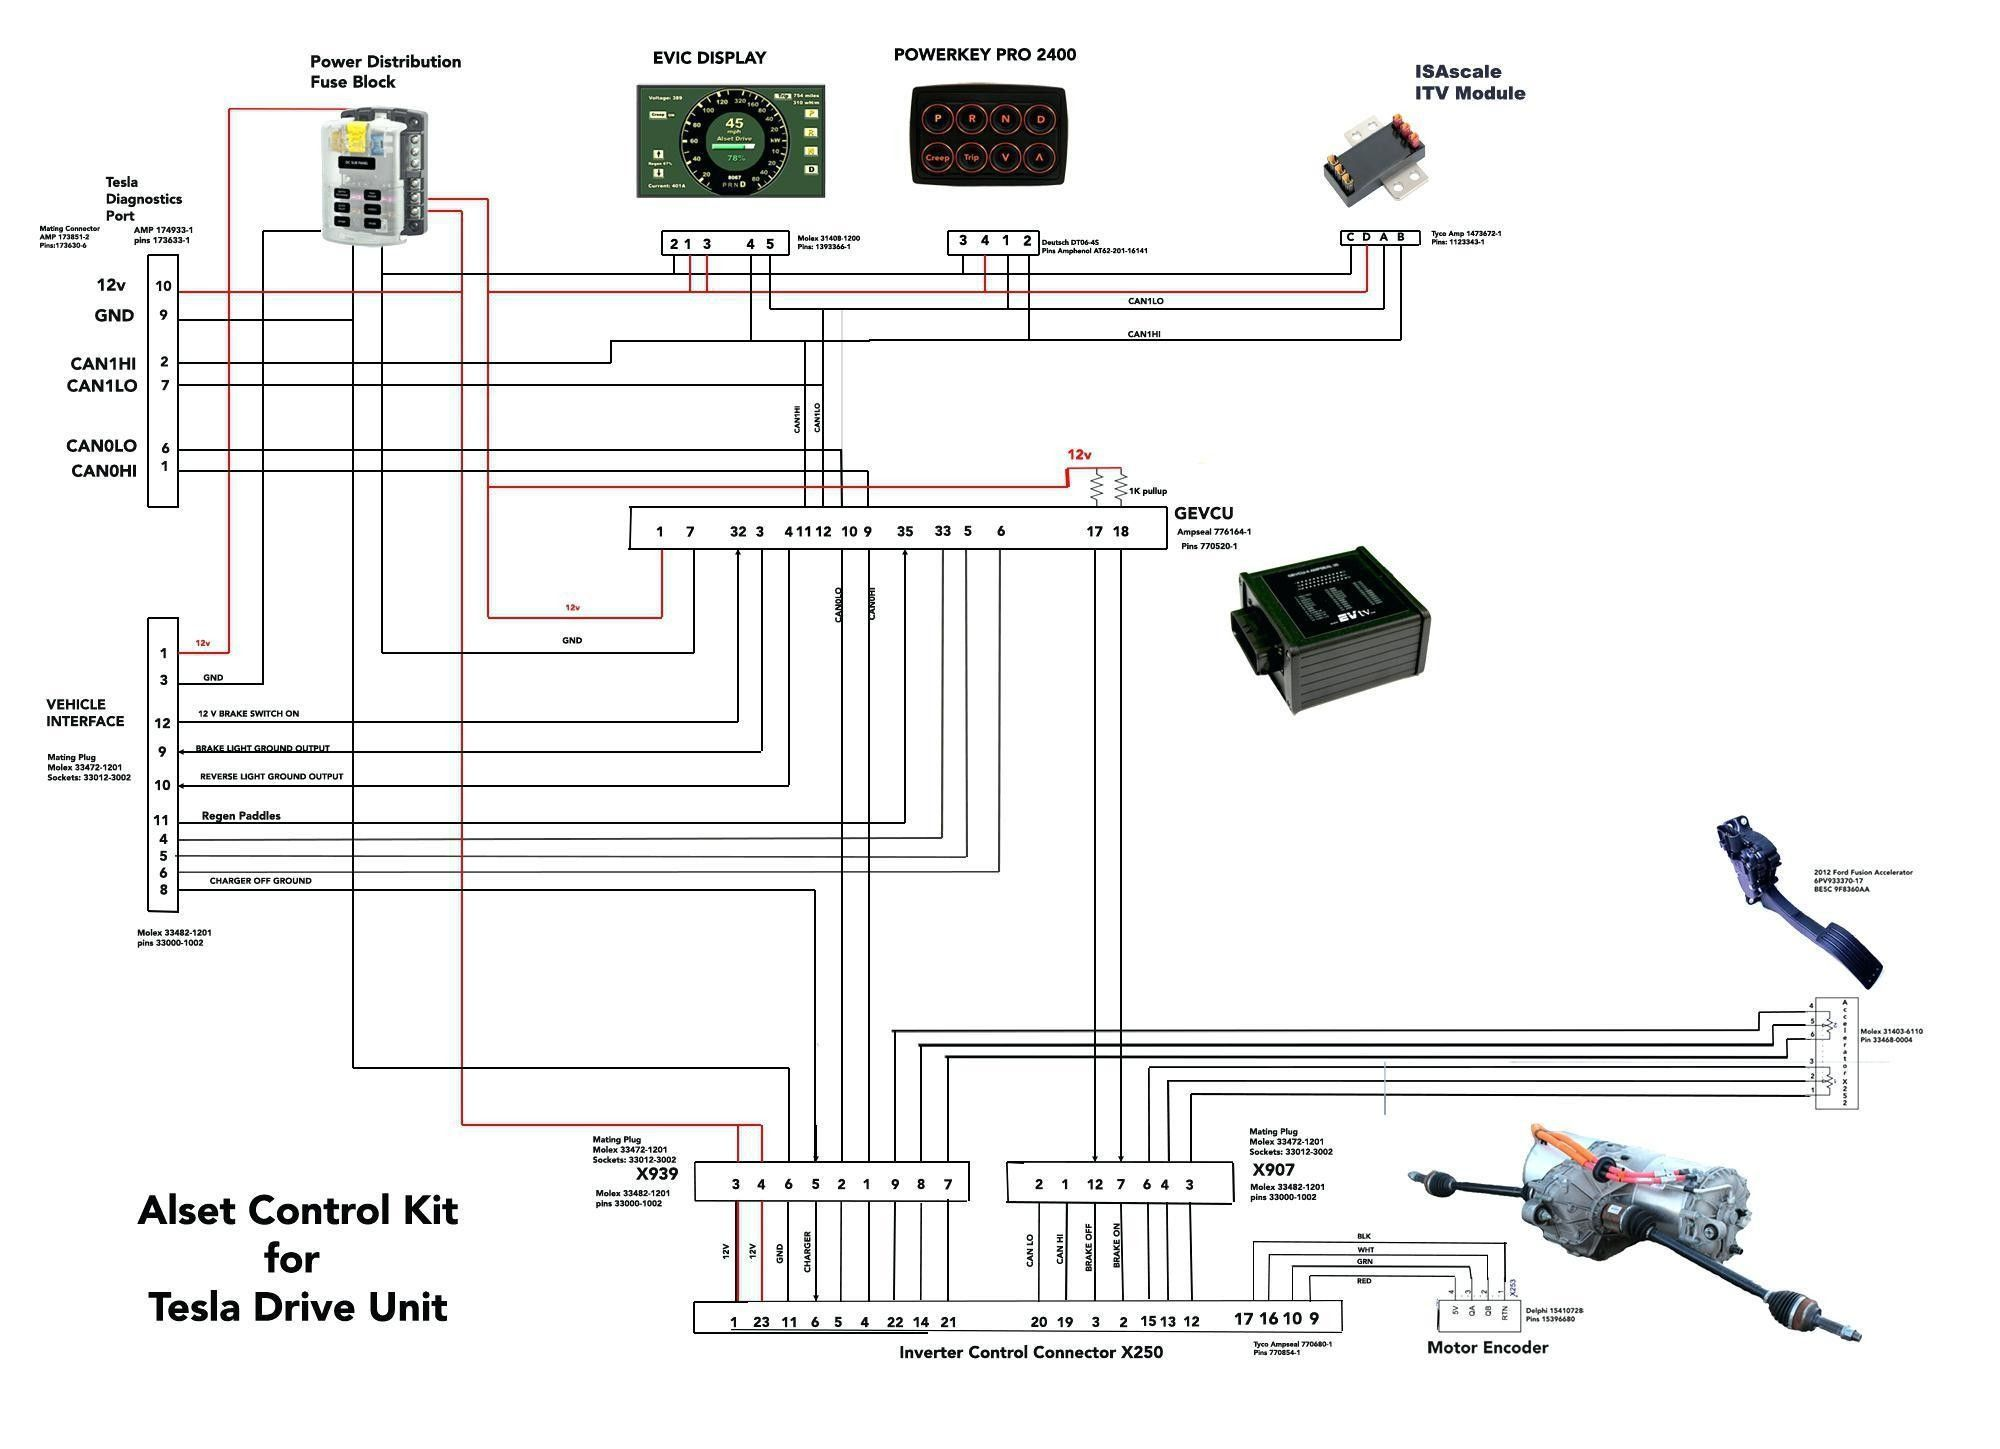 New Doorbell Wiring Diagram Uk Diagram, Doorbell, Wire